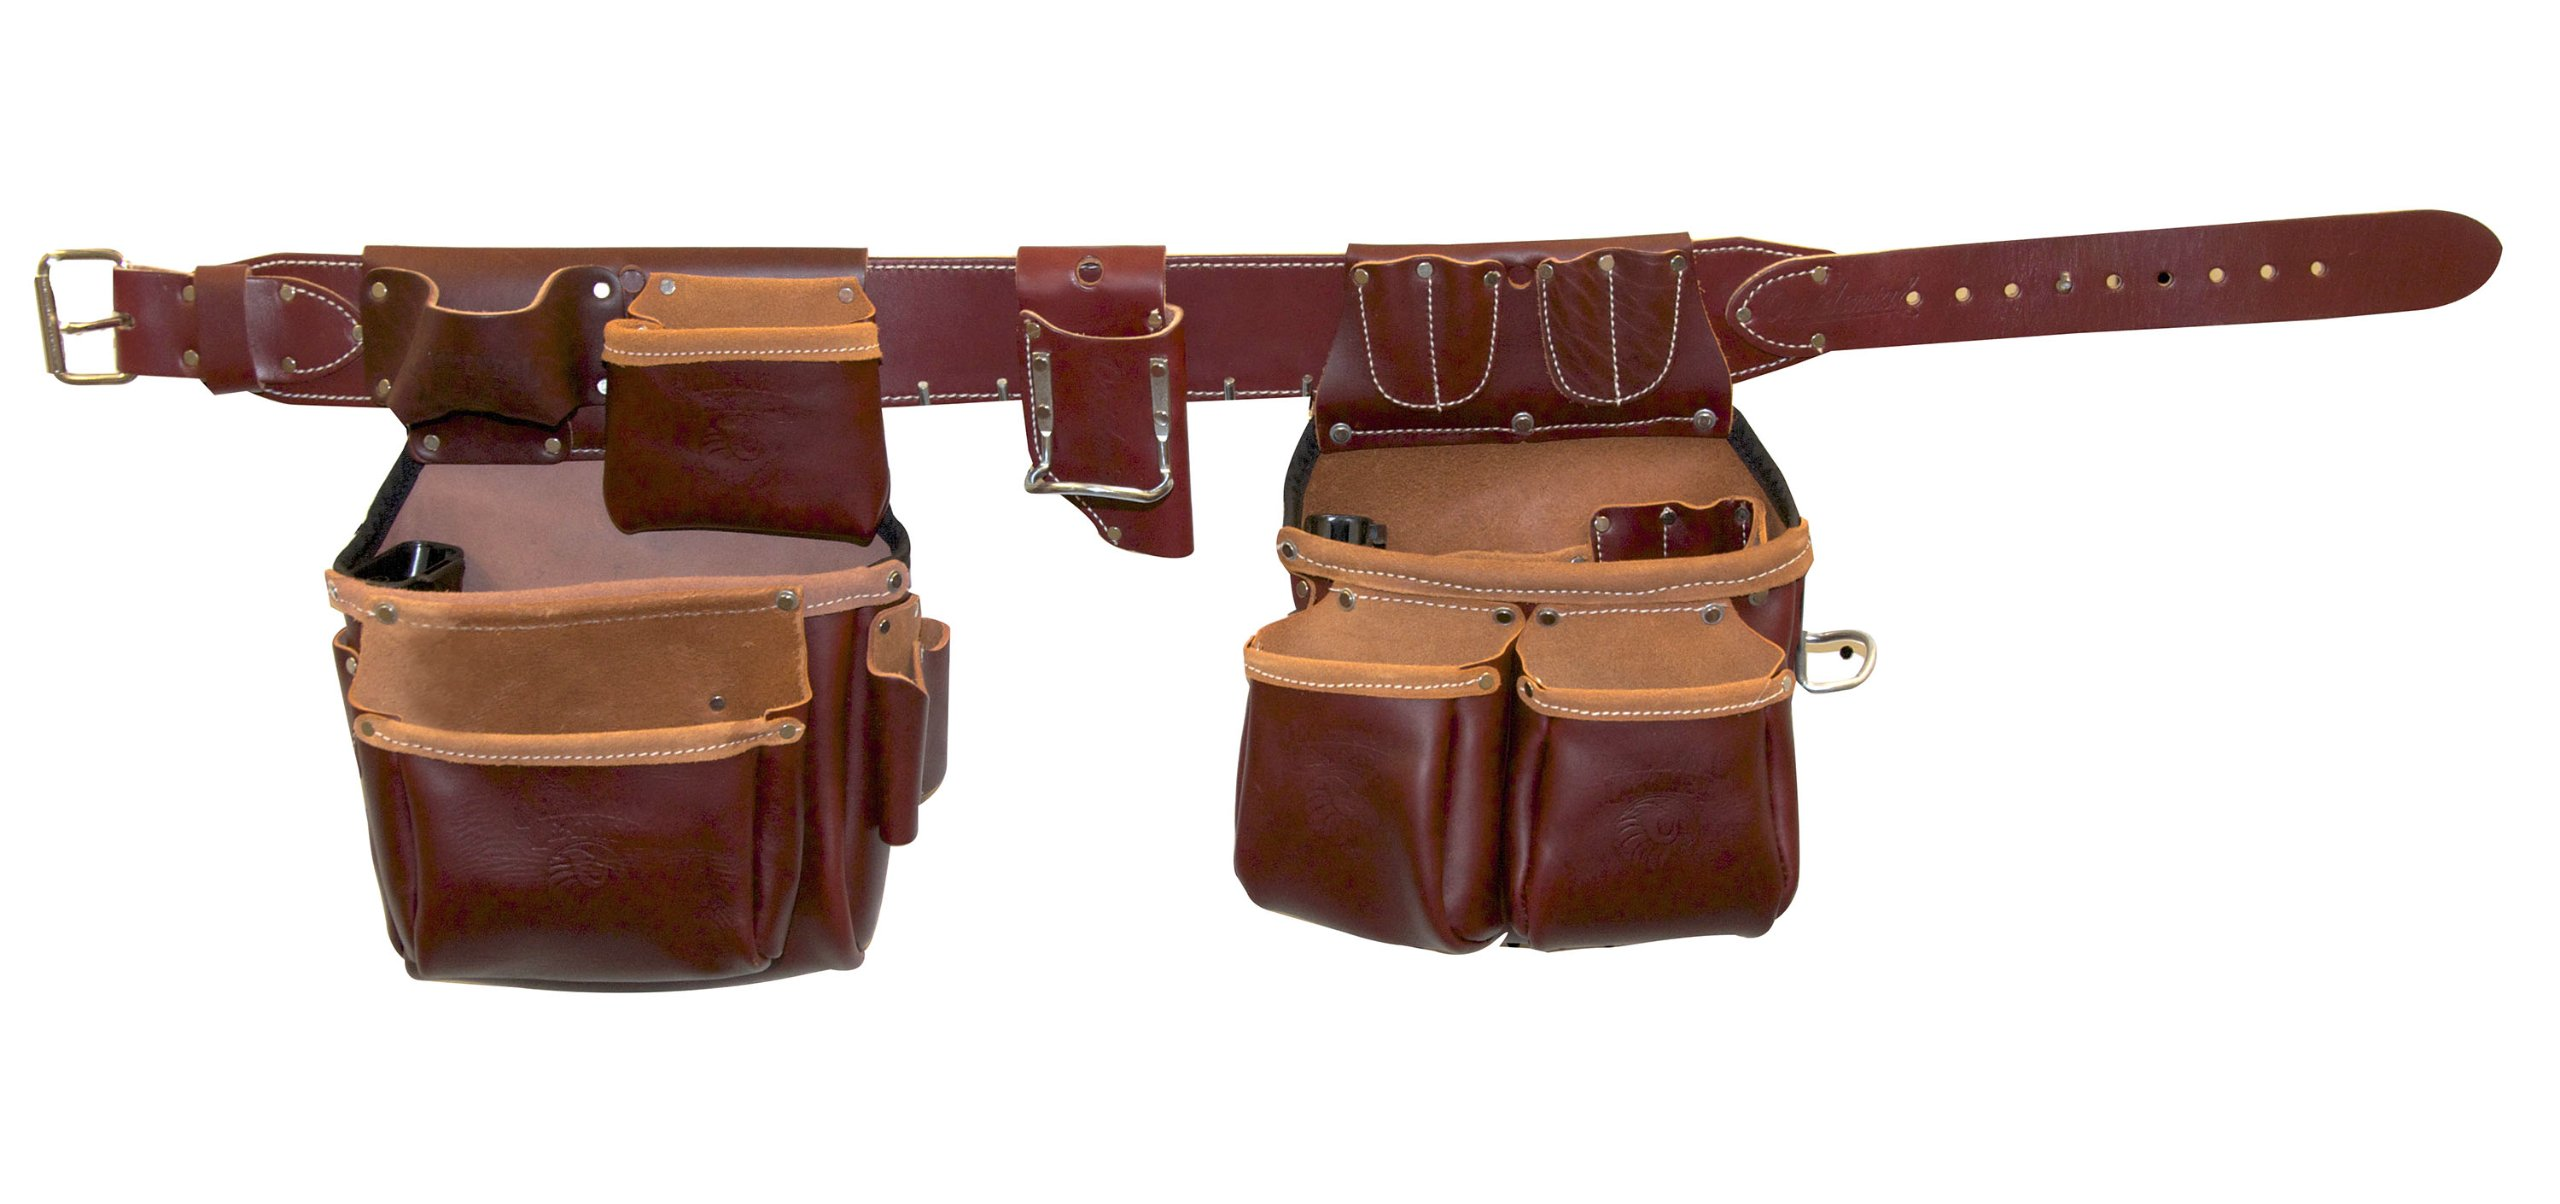 Occidental Leather 5530 XL Stronghold Big Oxy Set Tool Belt System, X-Large by Occidental Leather (Image #1)